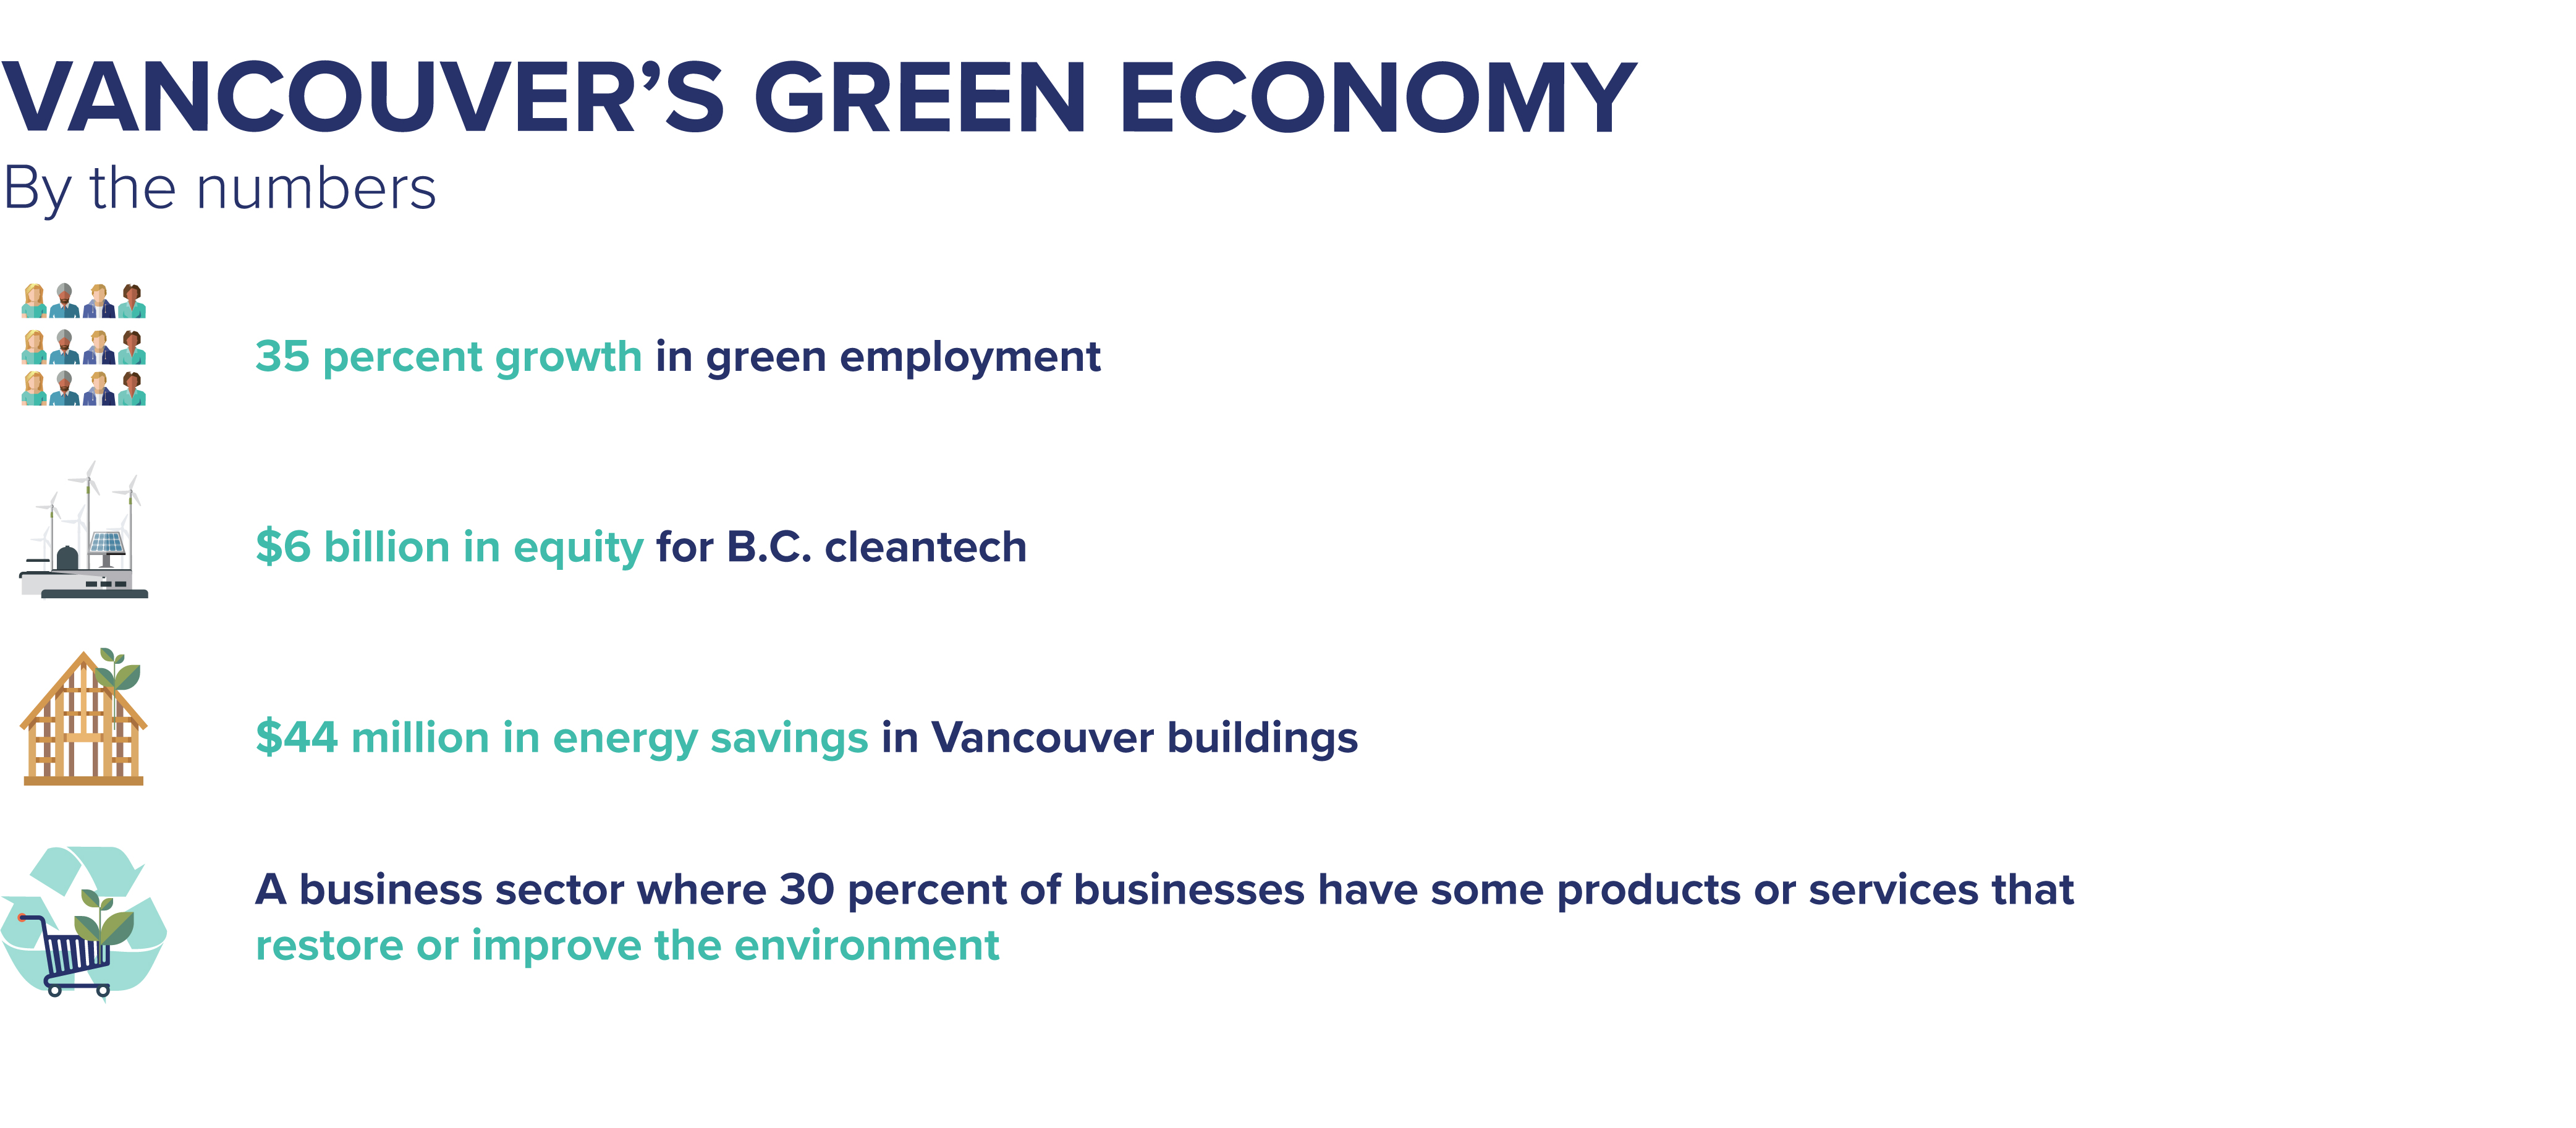 35 percent growth in green employment $6 billion in equity for B.C. cleantech $44 million in energy savings in Vancouver buildings A business sector where 30 percent of businesses have some products or services that restore or improve the environment